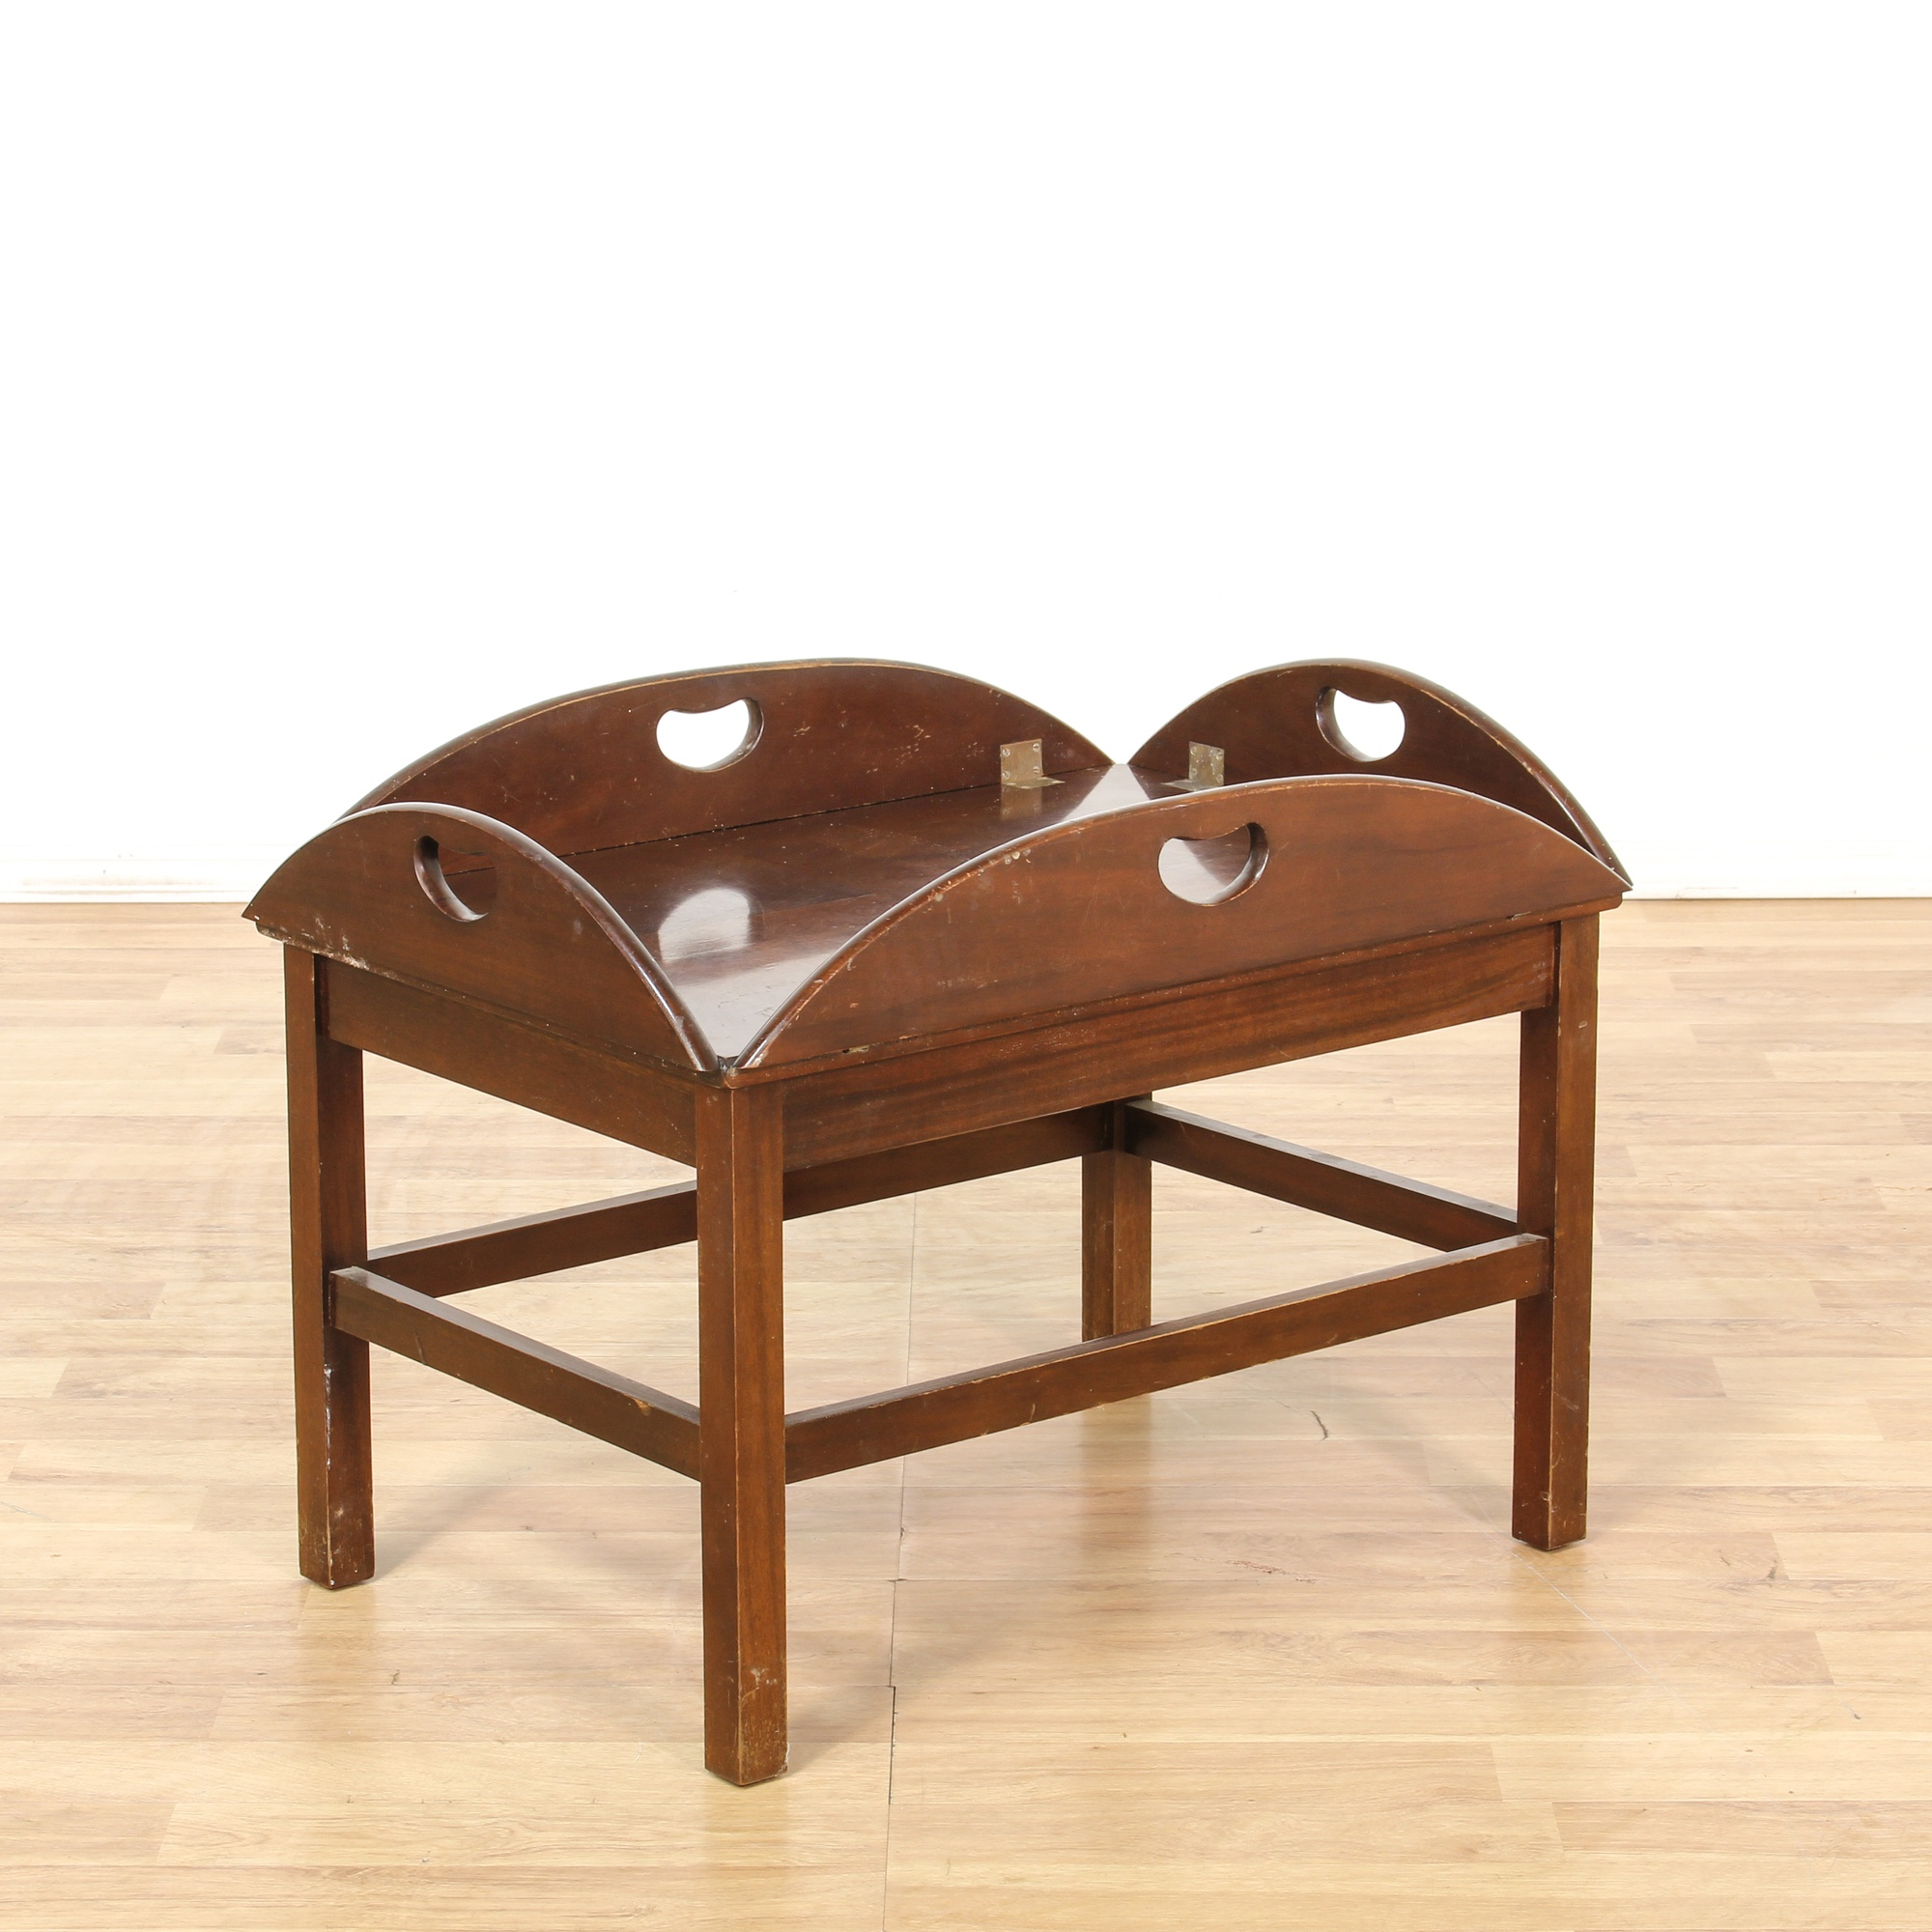 Oval Hinged Sides Wooden Coffee Table  Loveseat Vintage. Girls Table Lamp. Centerpieces For Dining Room Table. Counter Height Square Table. Jesper Adjustable Desk. French Table Linens. Mahogany Writing Desk. Under Desk Mobile Pedestals. Compact Table